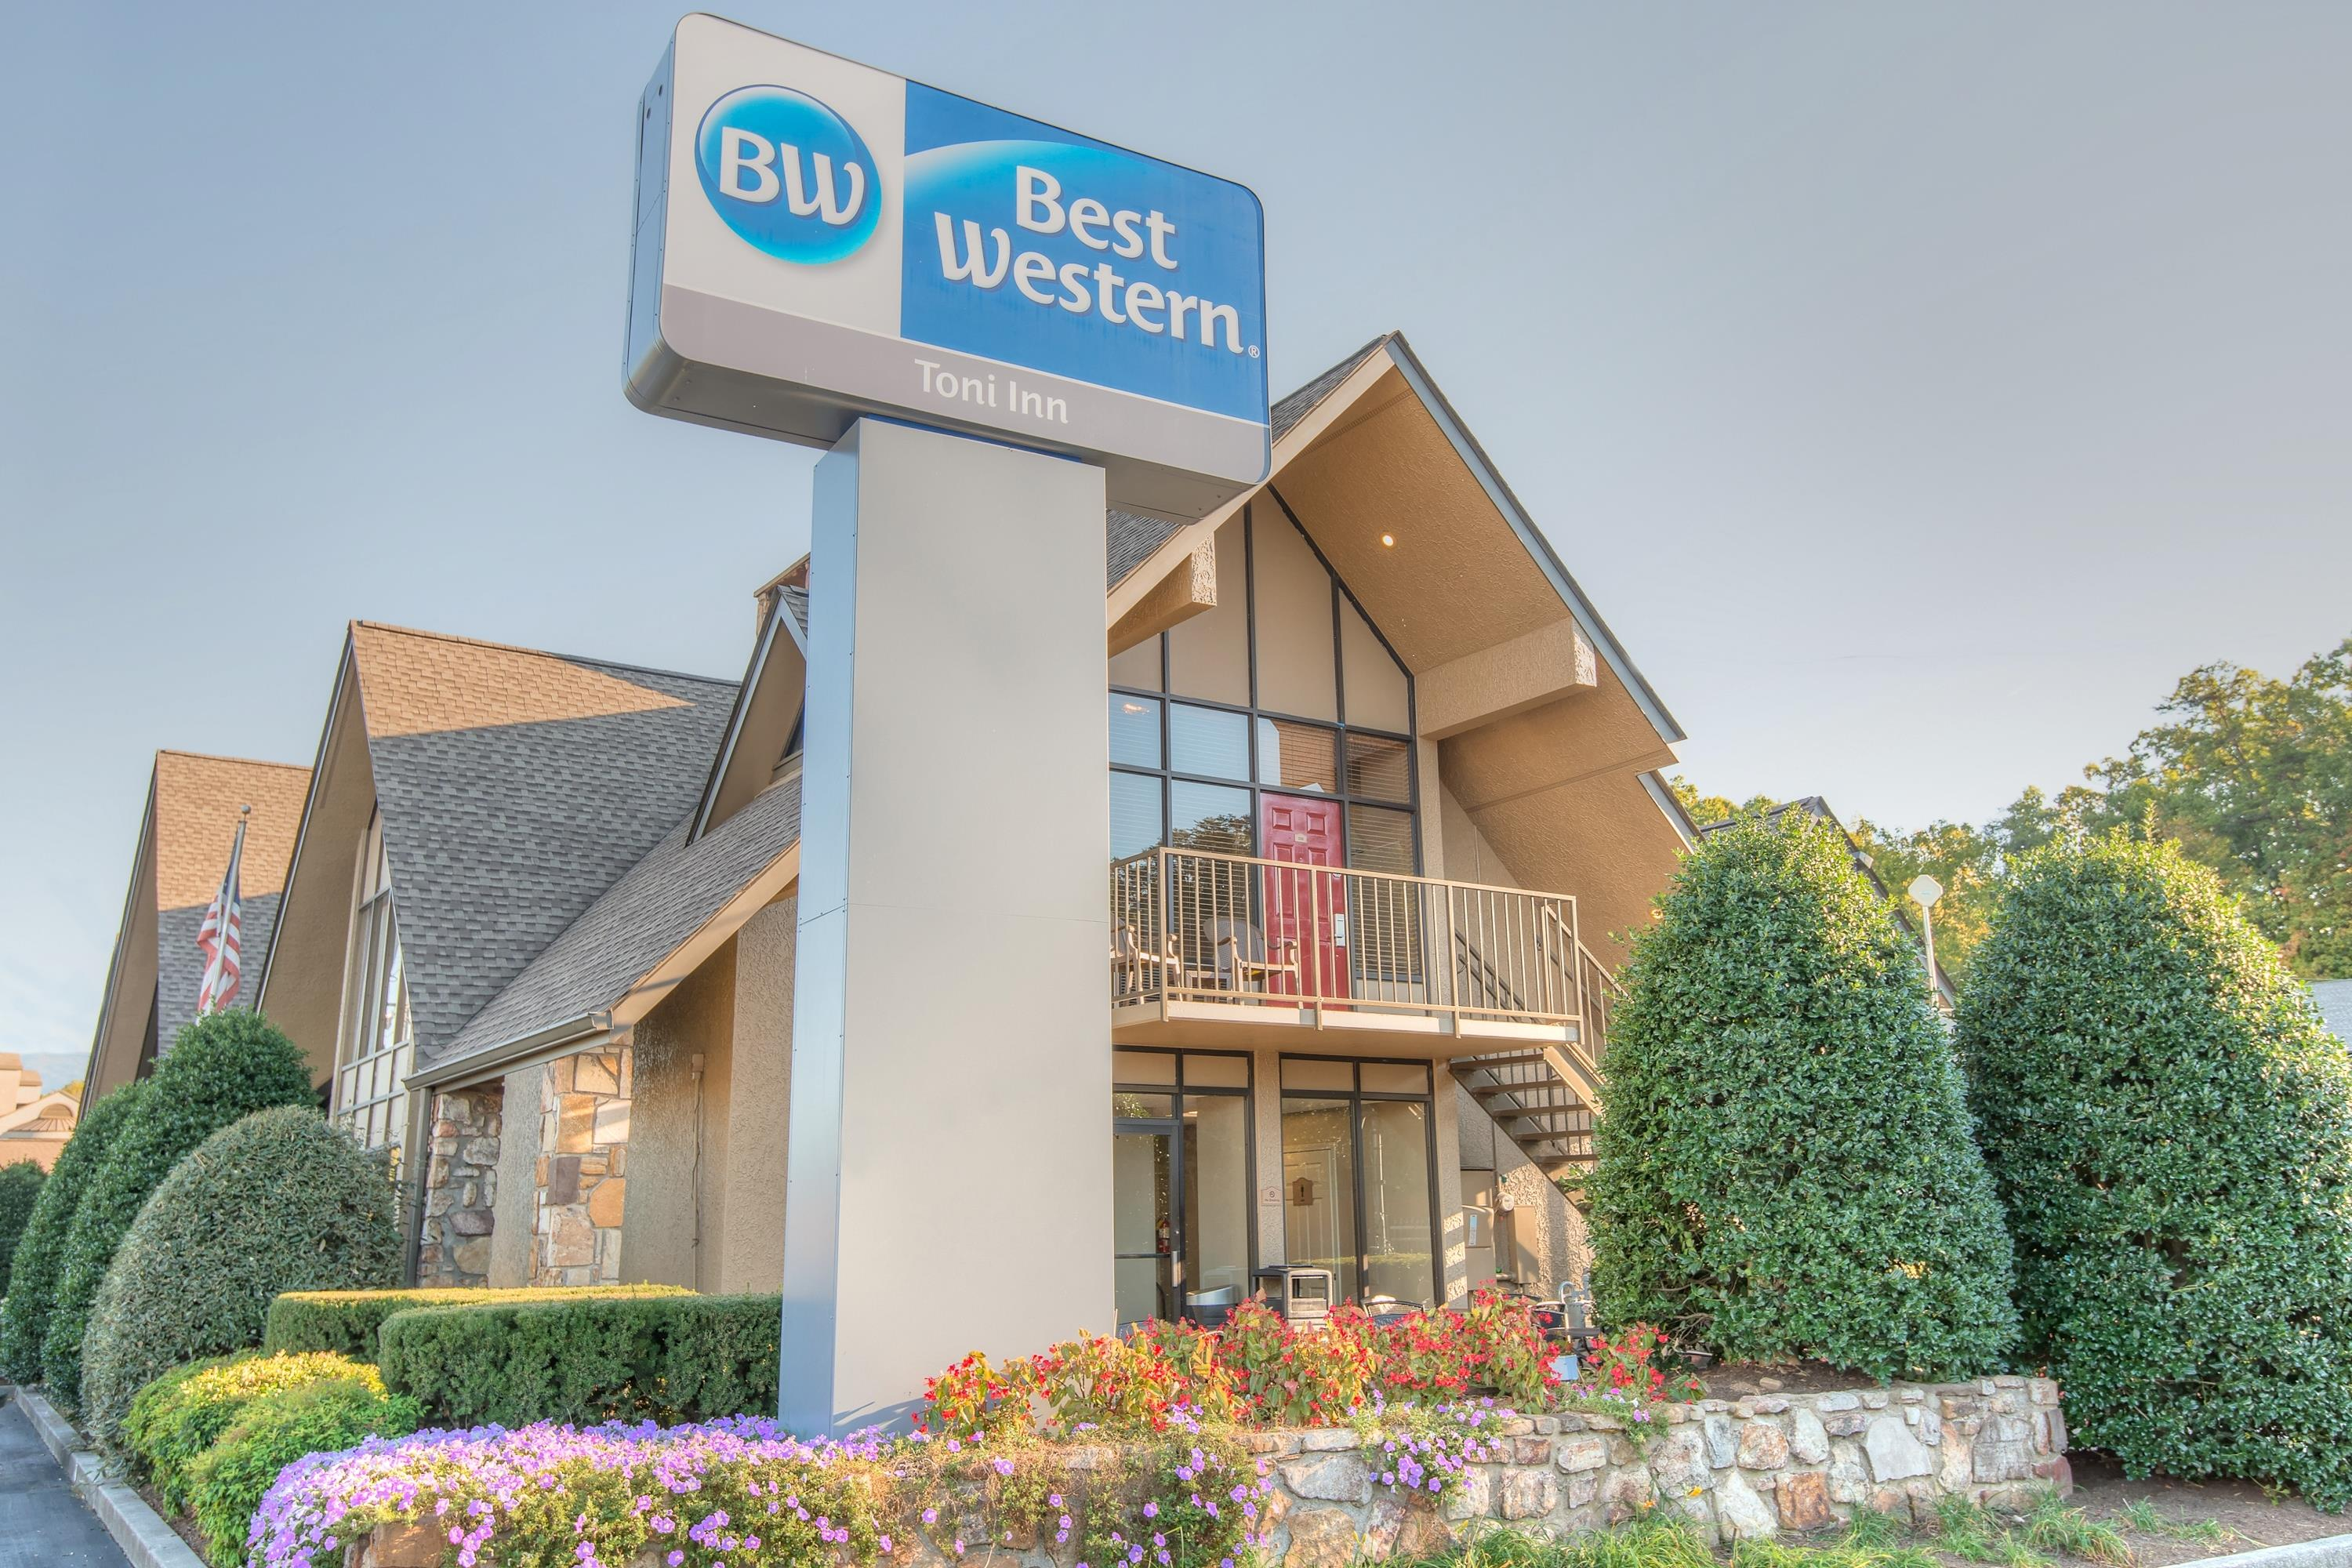 best western toni inn in pigeon forge tn whitepages